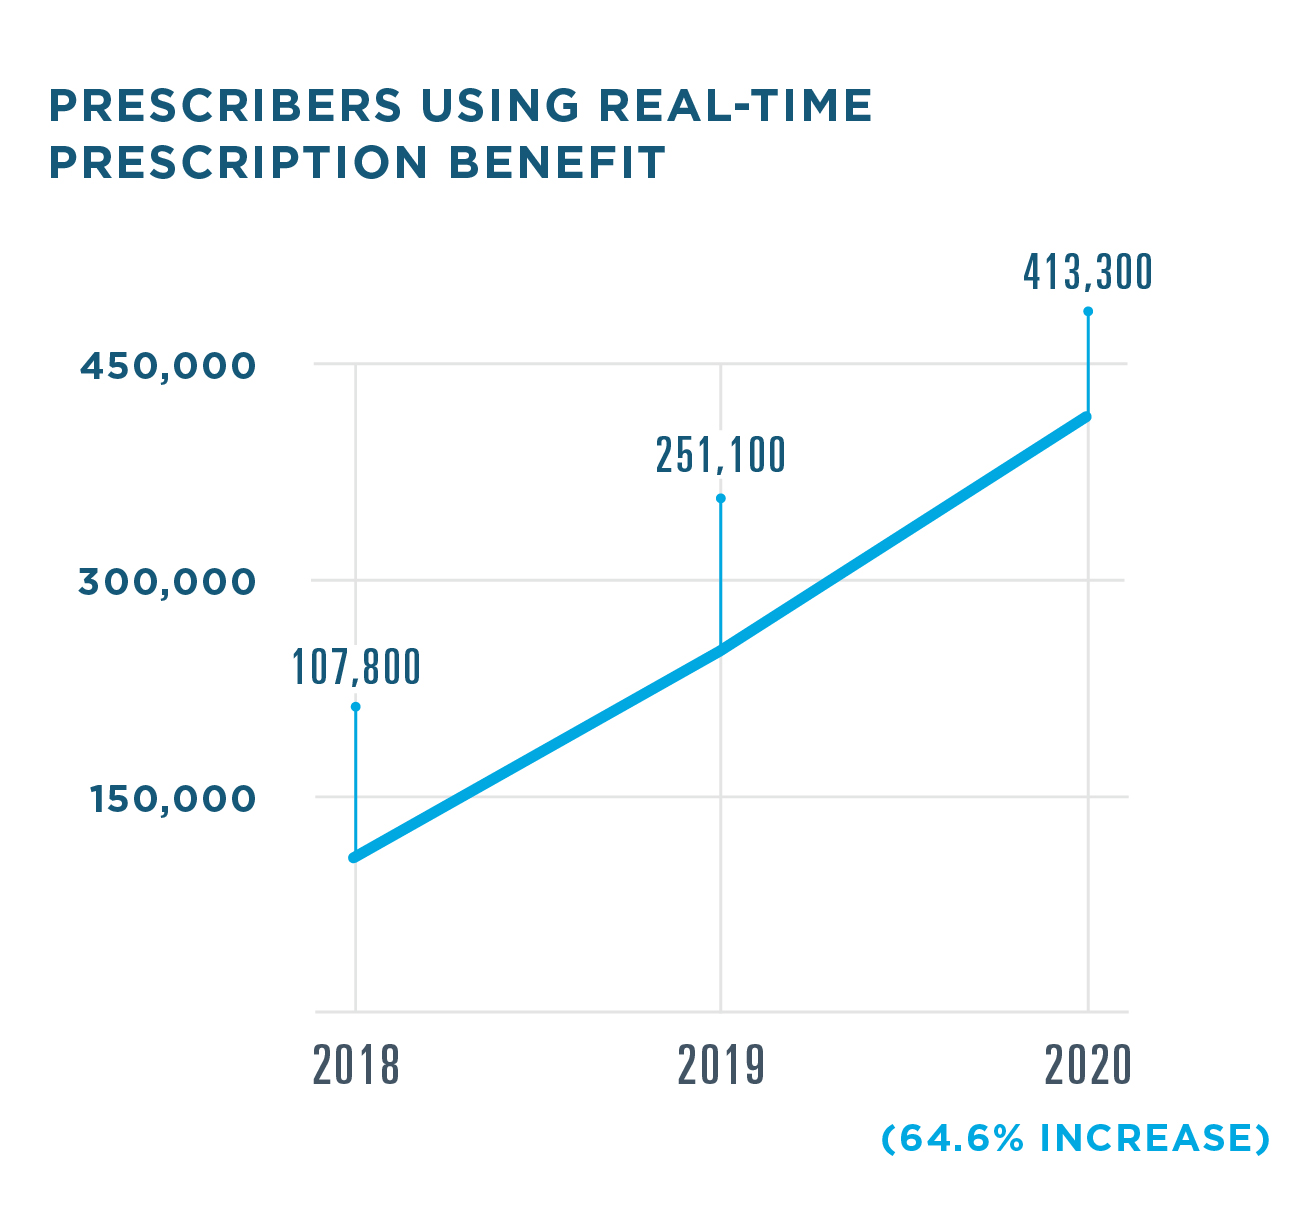 238.7 million Real-Time Prescription Benefit responses were delivered to prescribers in 2020, a 75.4% increase from 136.1 million in 2019. 40.5 million responses were delivered in 2018.  413,000 U.S. prescribers used Real-Time Prescription Benefit in 2020, a 64.6% increase from 251,100 in 2019. 107,800 prescribers used the service in 2018.